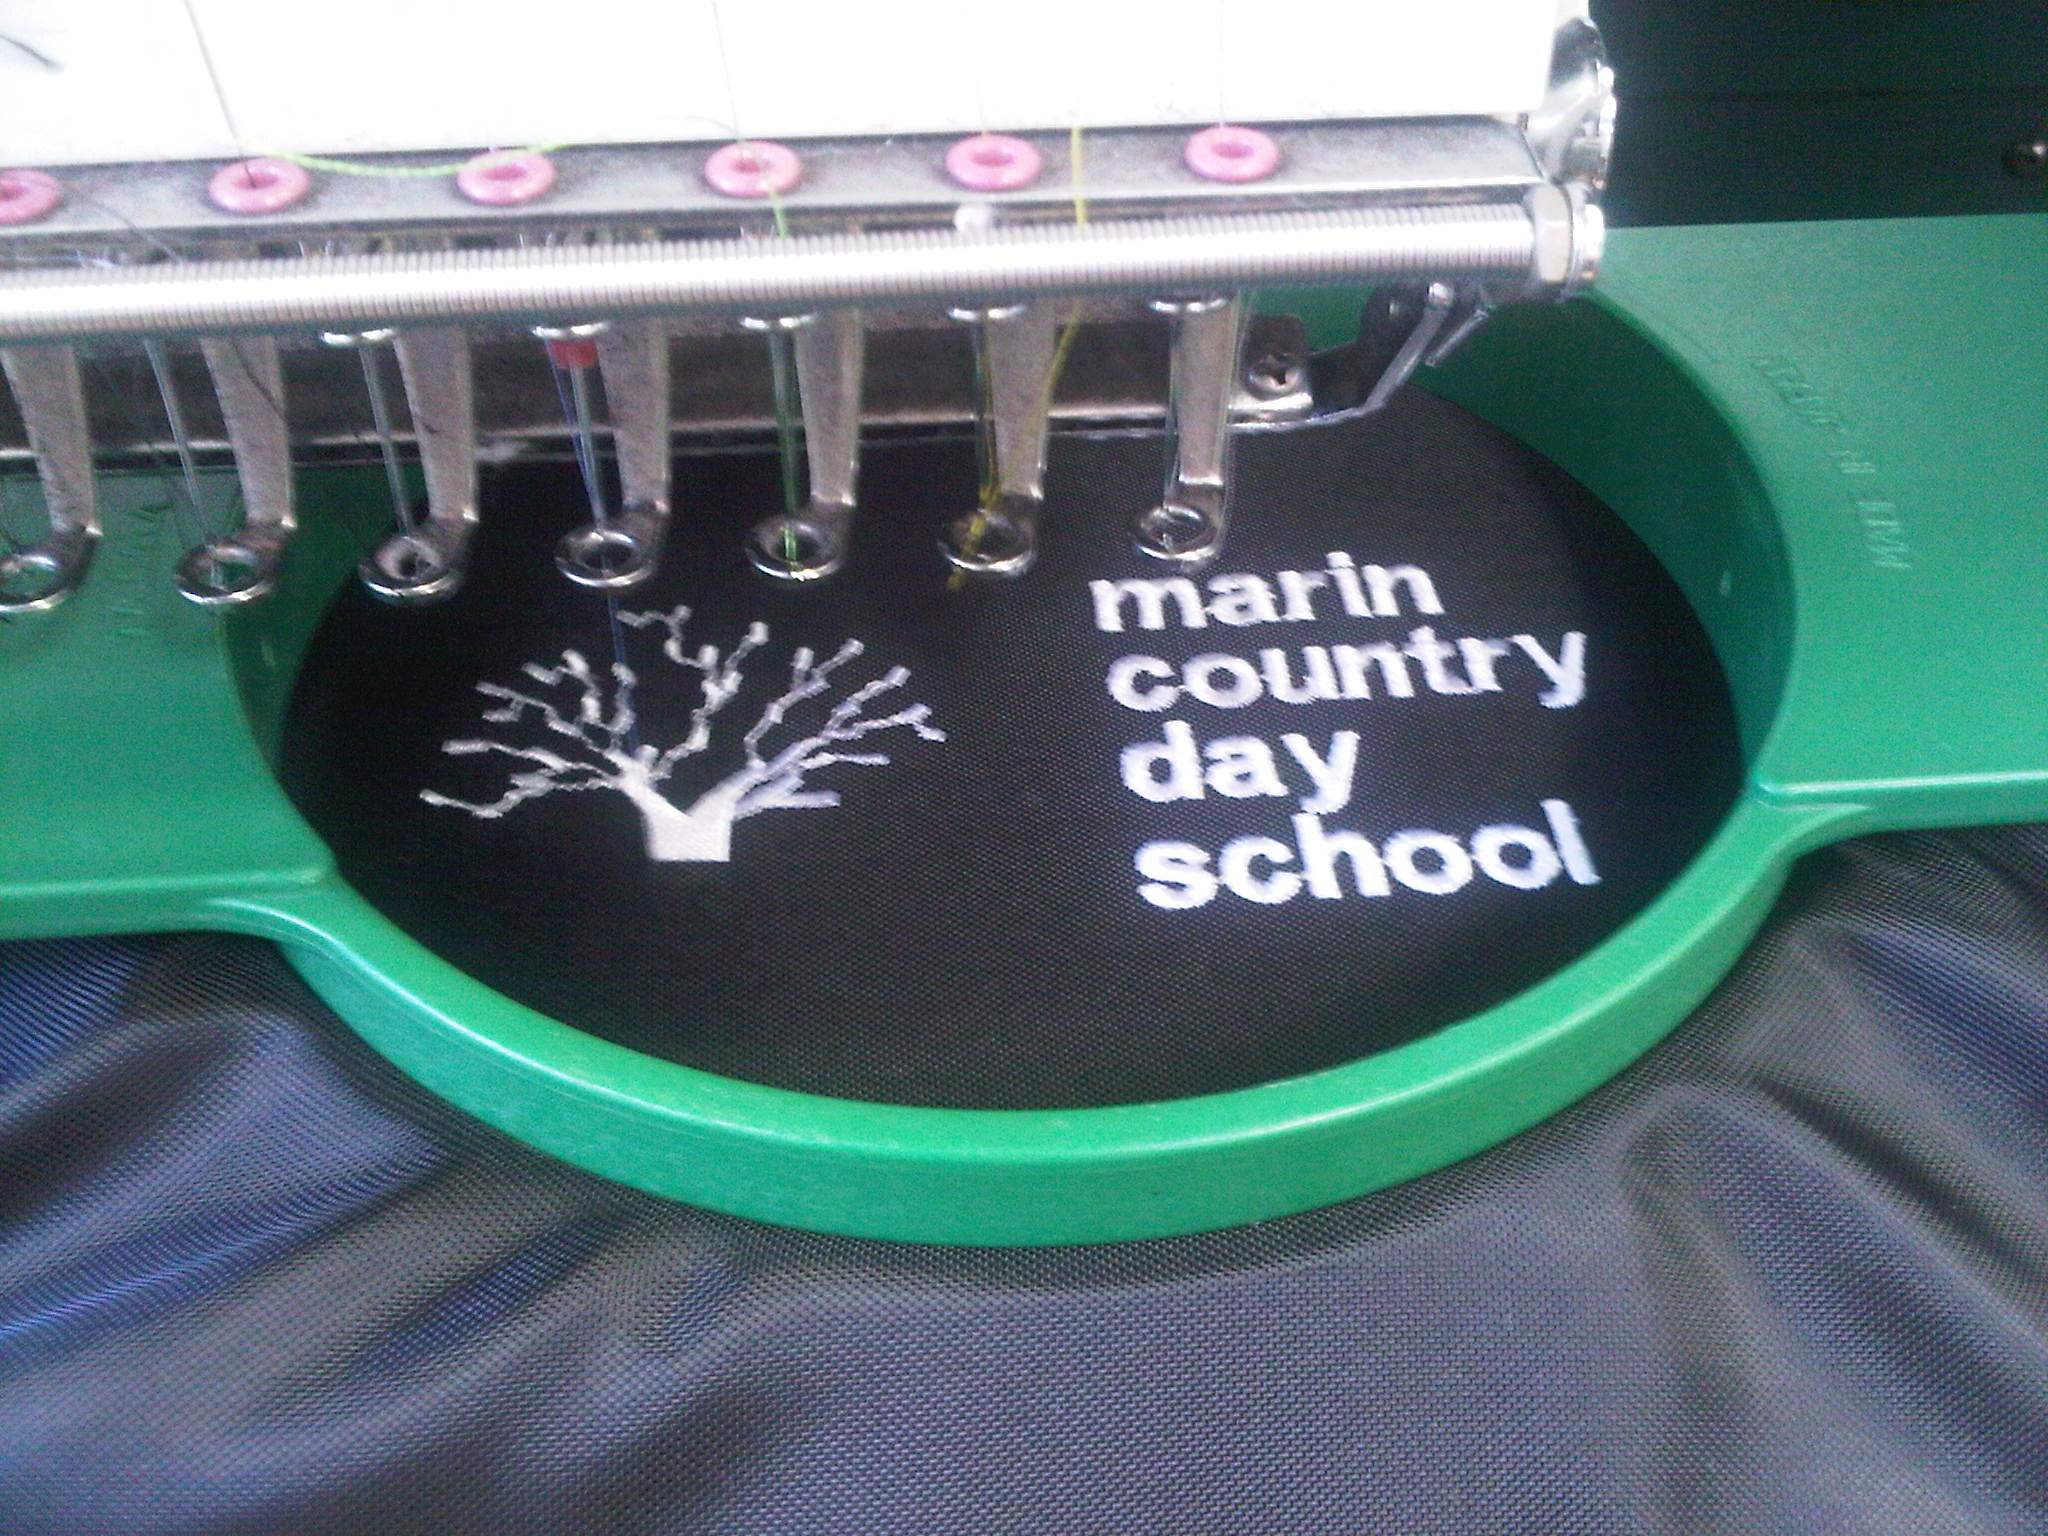 day school fleece throw